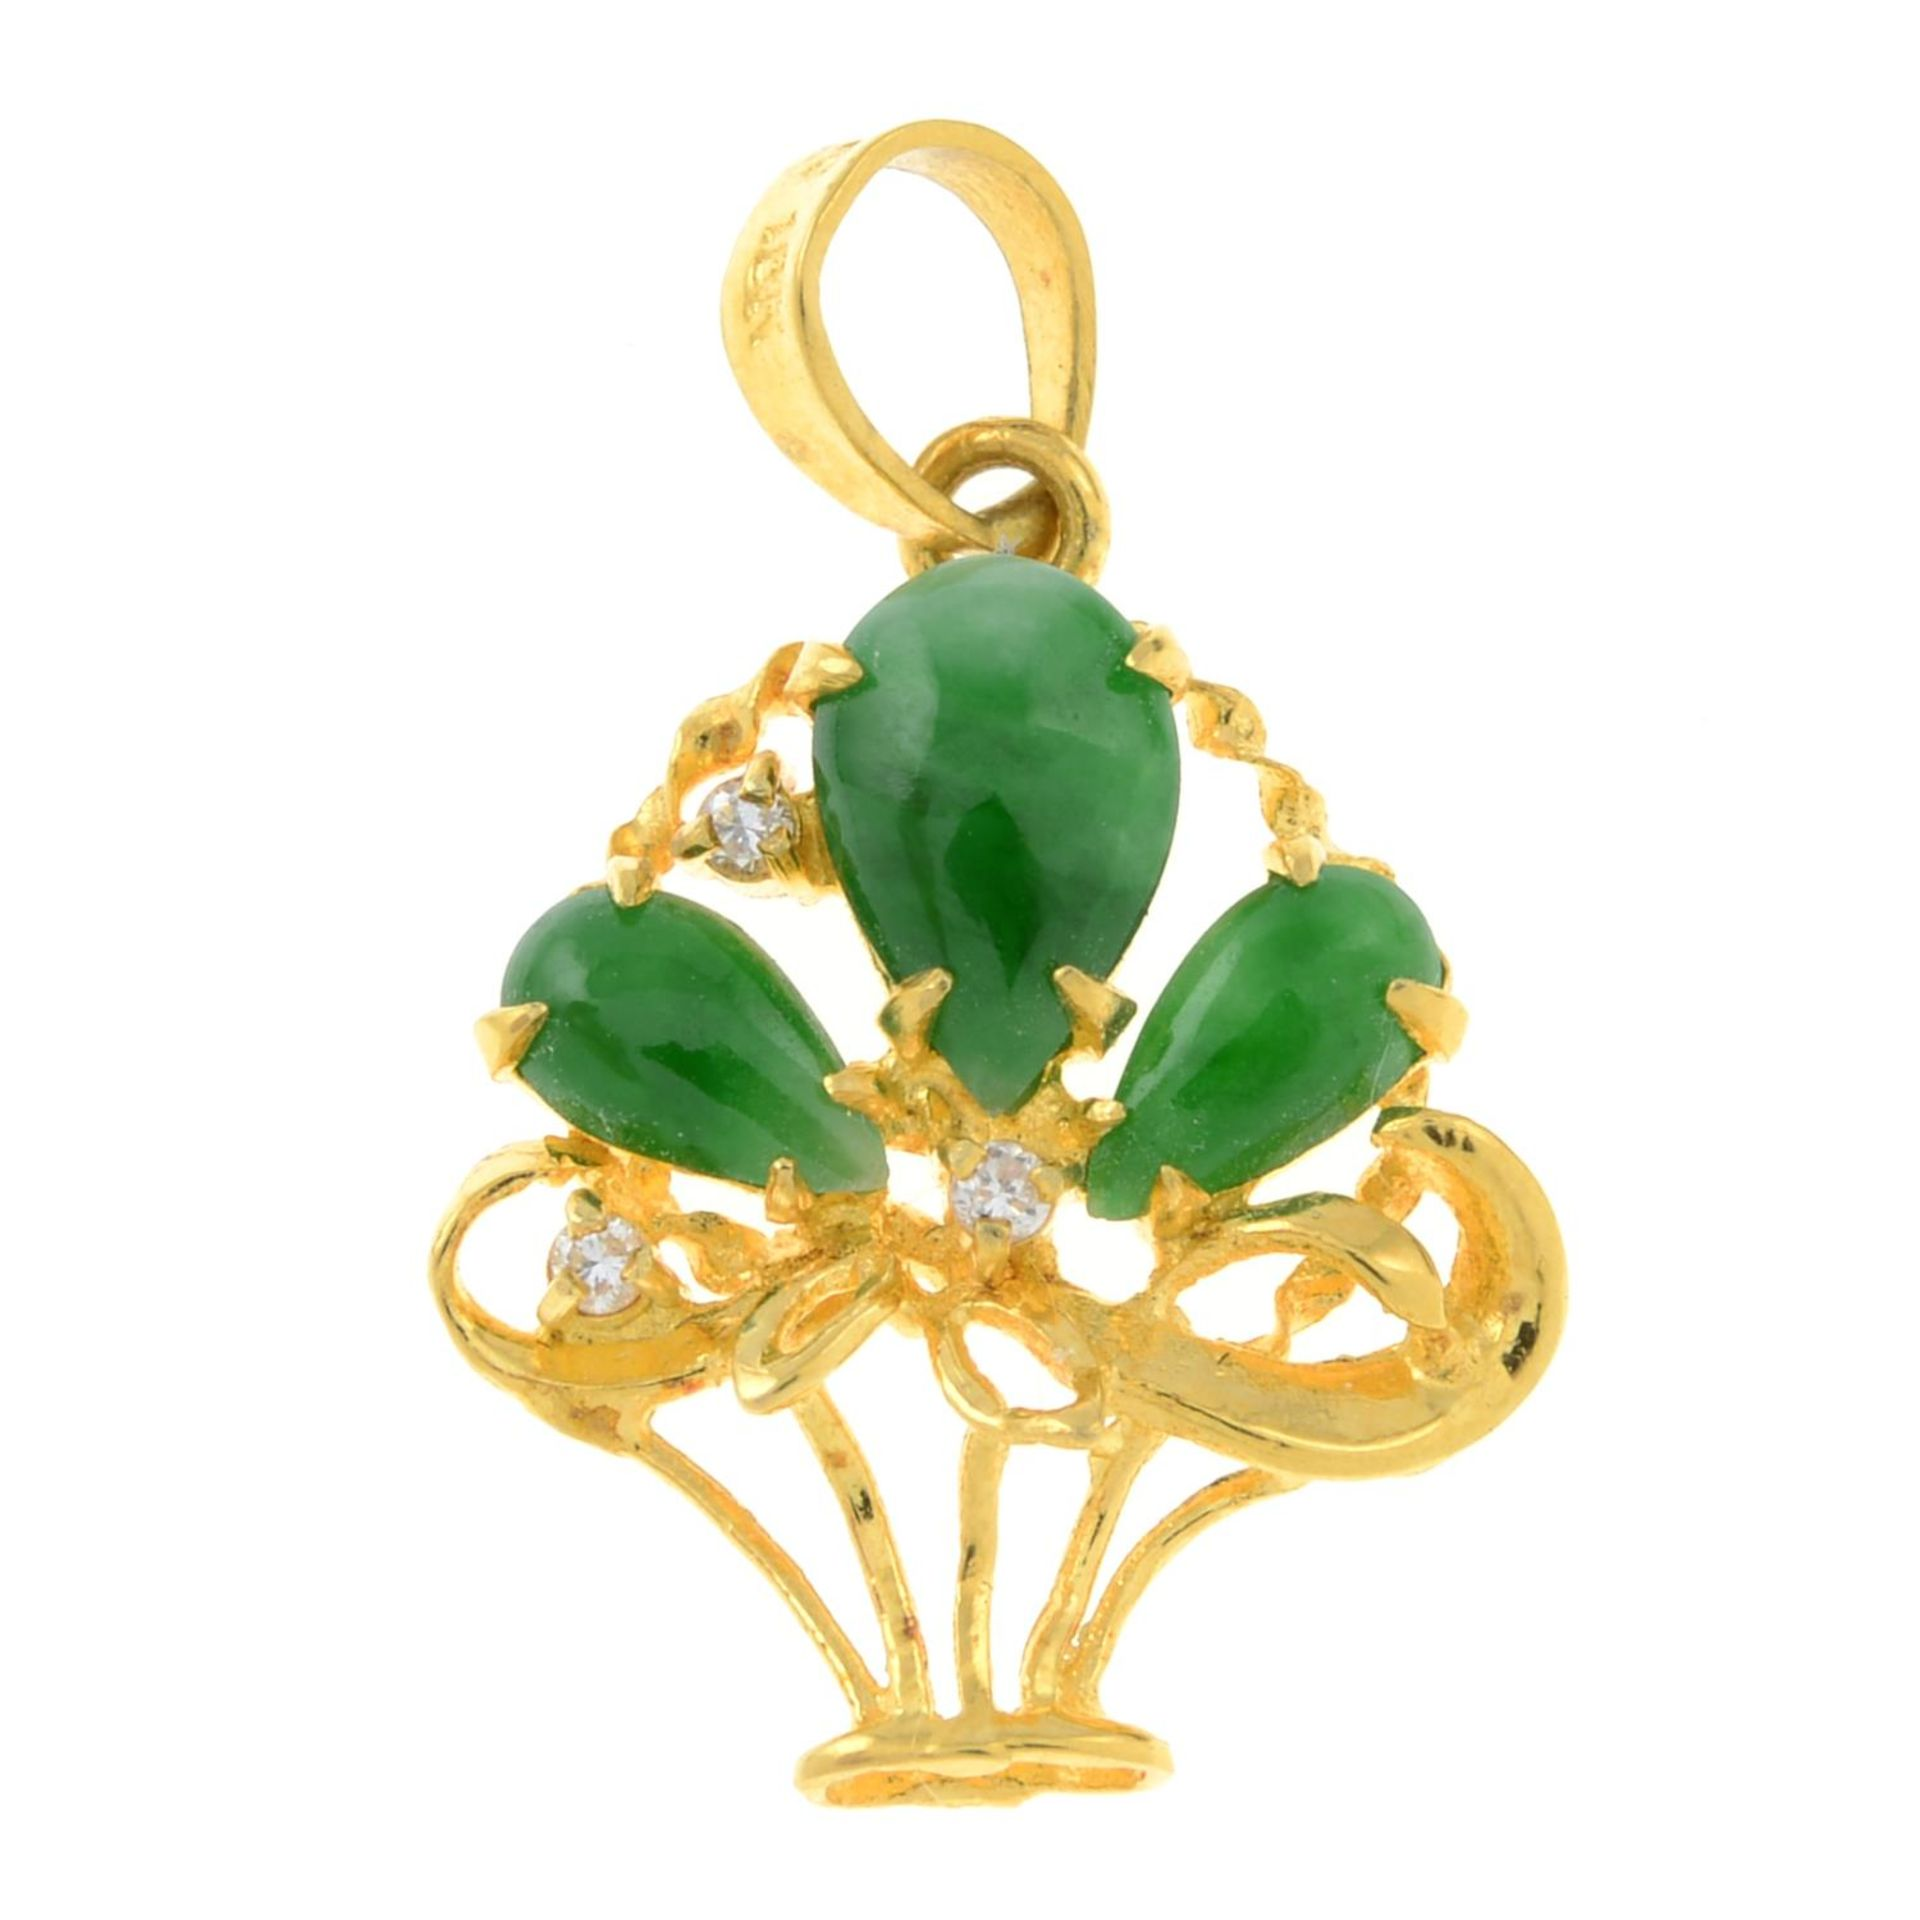 A jade pendant, designed to depict an openwork flower basket, with diamond accent.Stamped 750 18K.